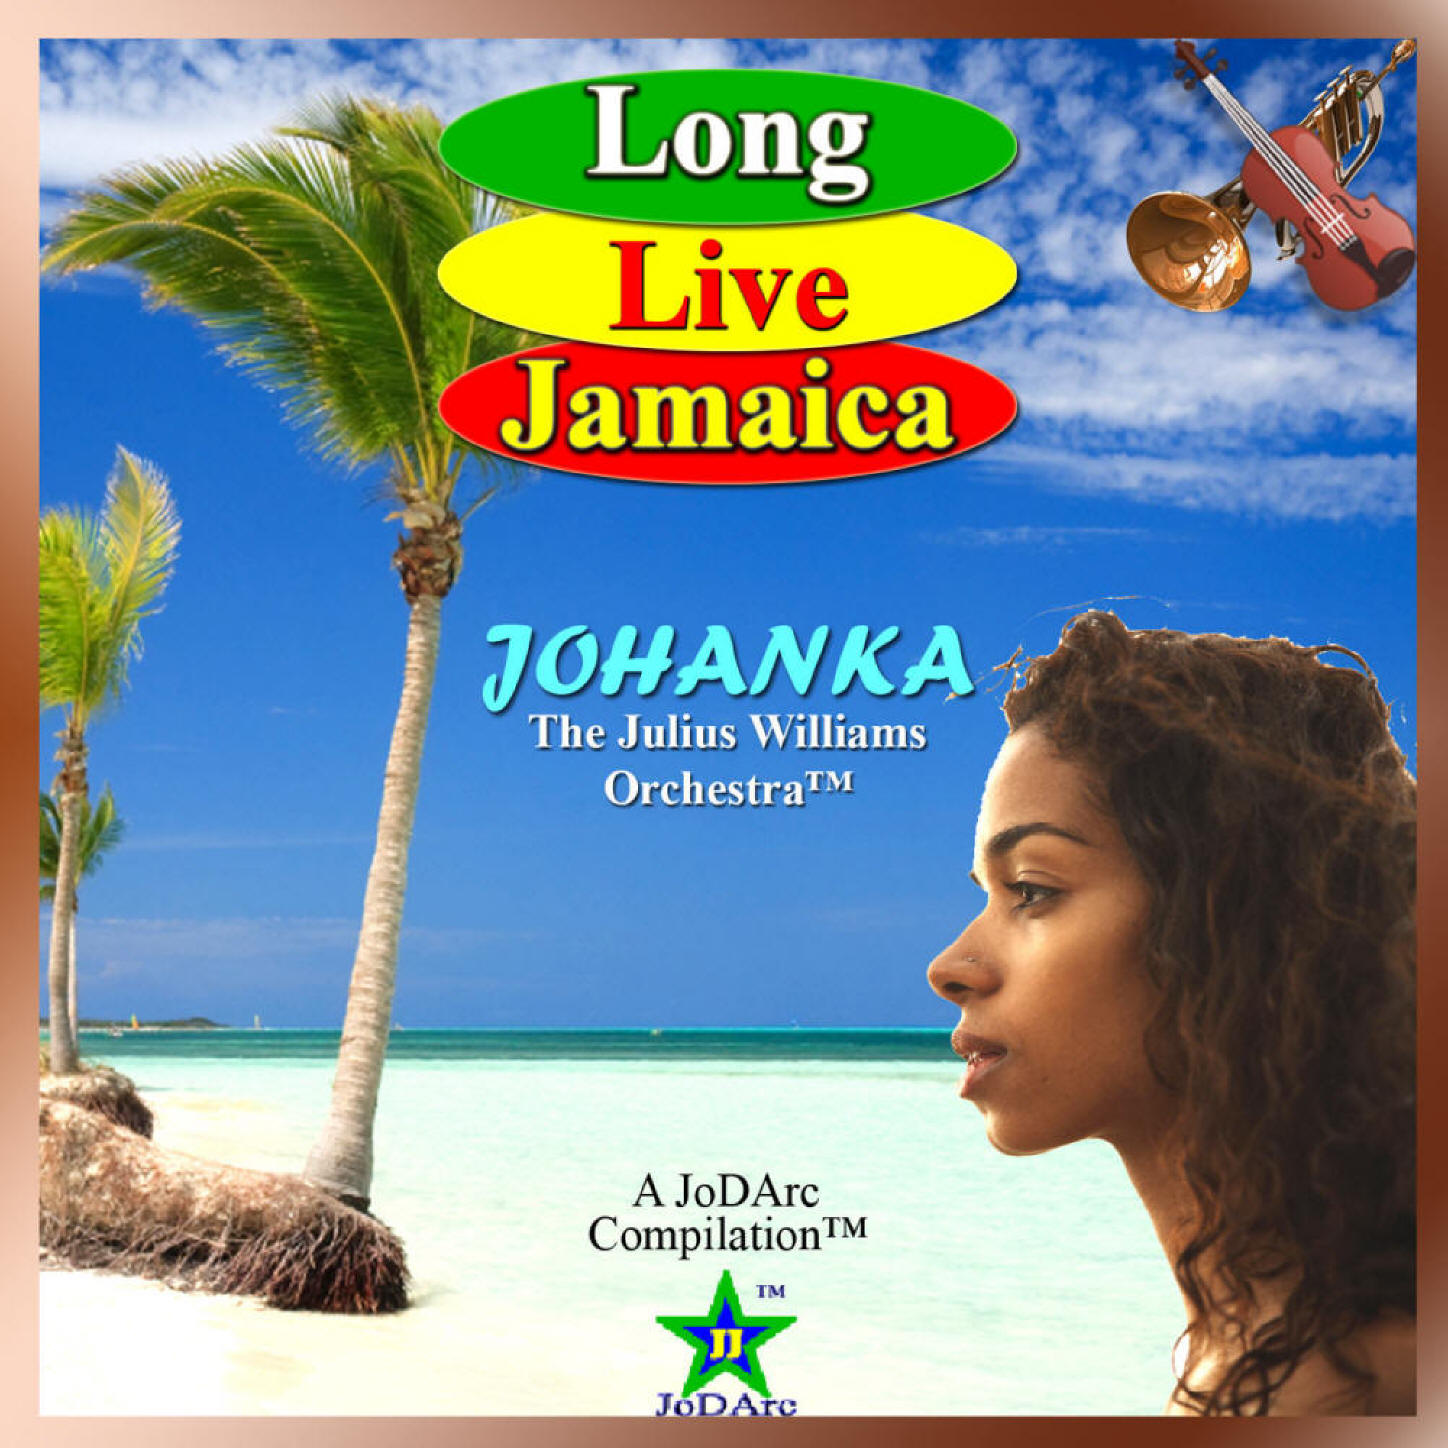 Long Live Jamaica (music / audio CD), by Johanka: The Julius Williams Orchestra